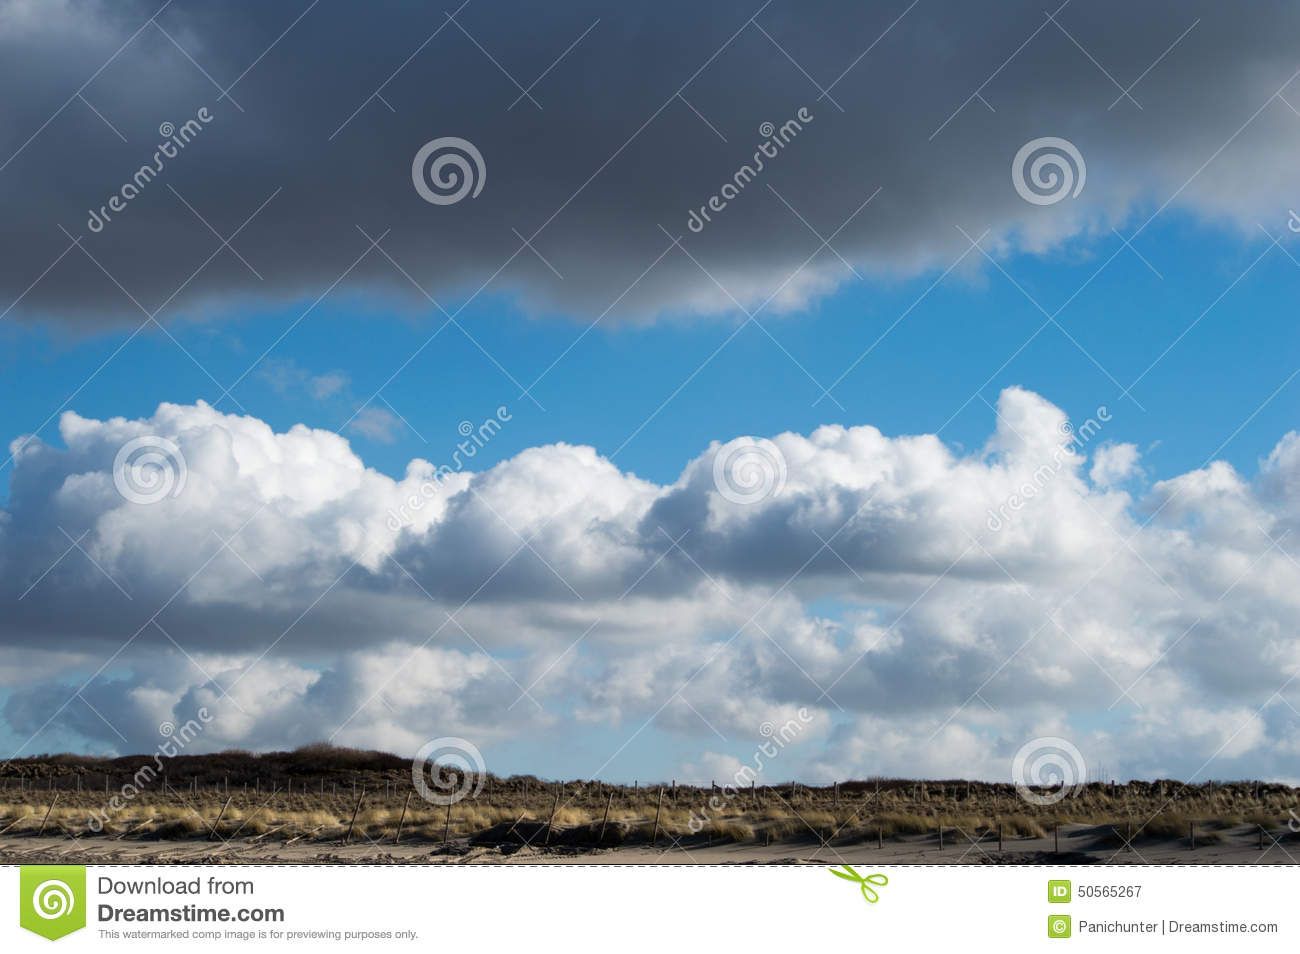 Clouds in a beautiful cloud formation above the dunes